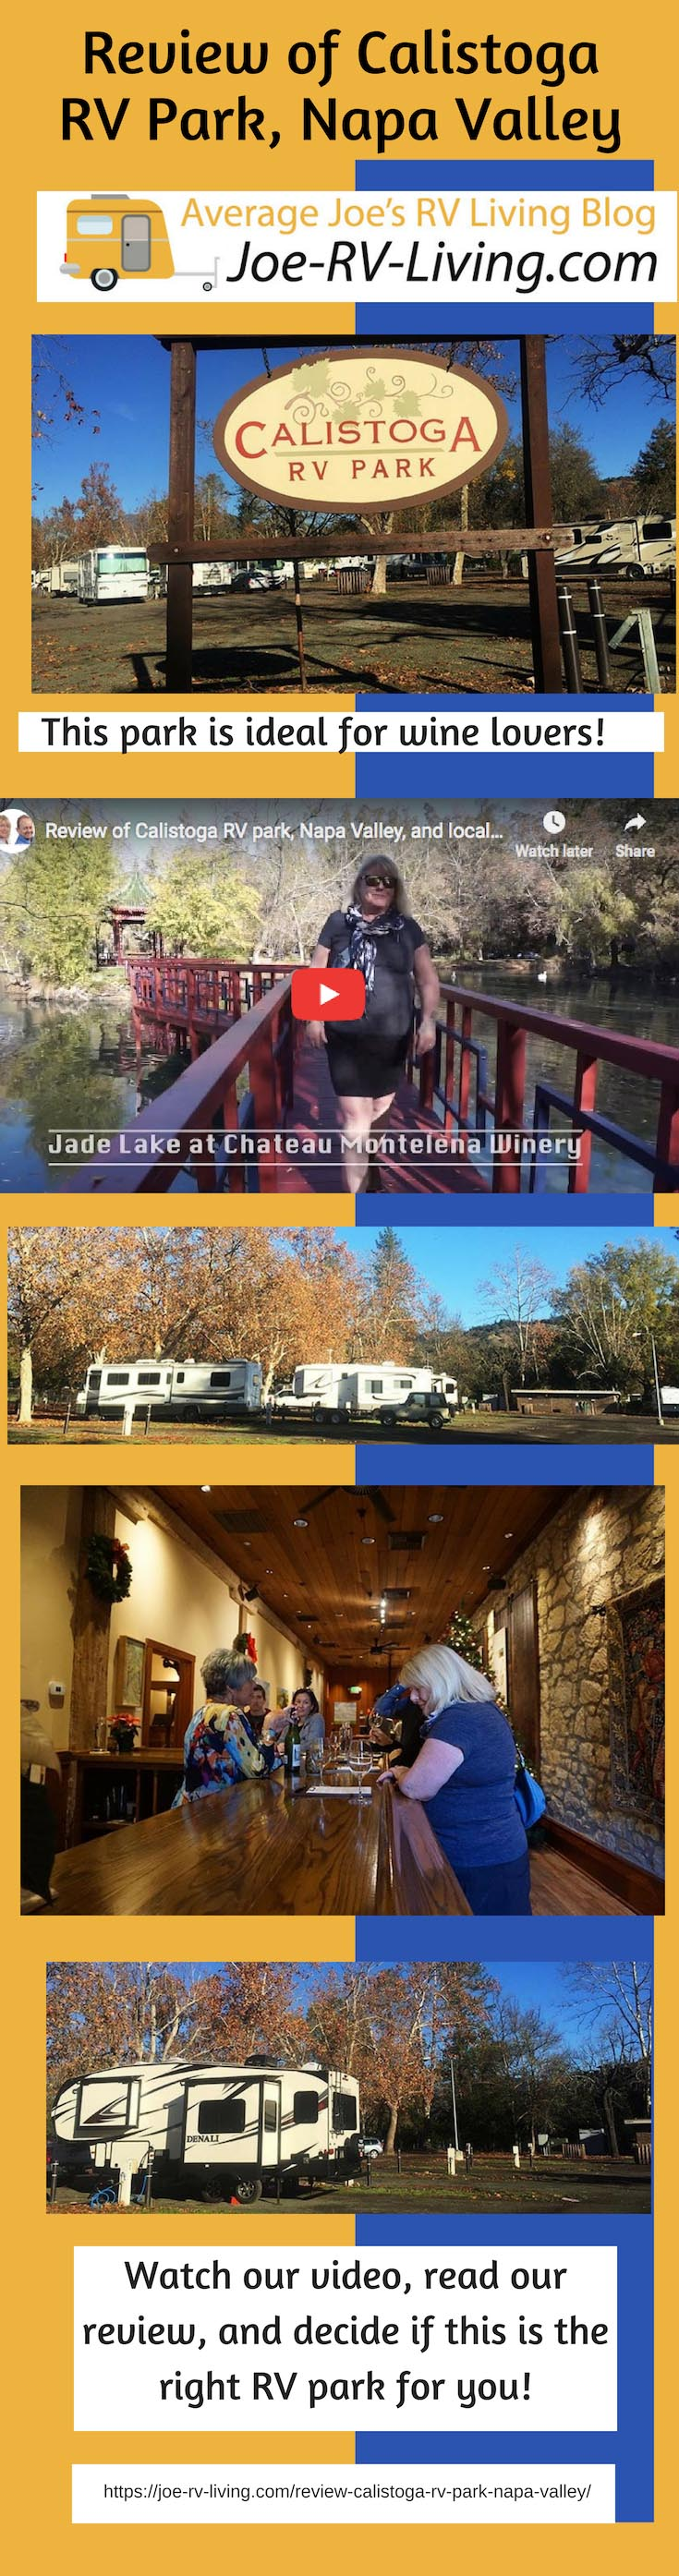 Review of Calistoga RV Park, Calistoga, Napa Valley, California